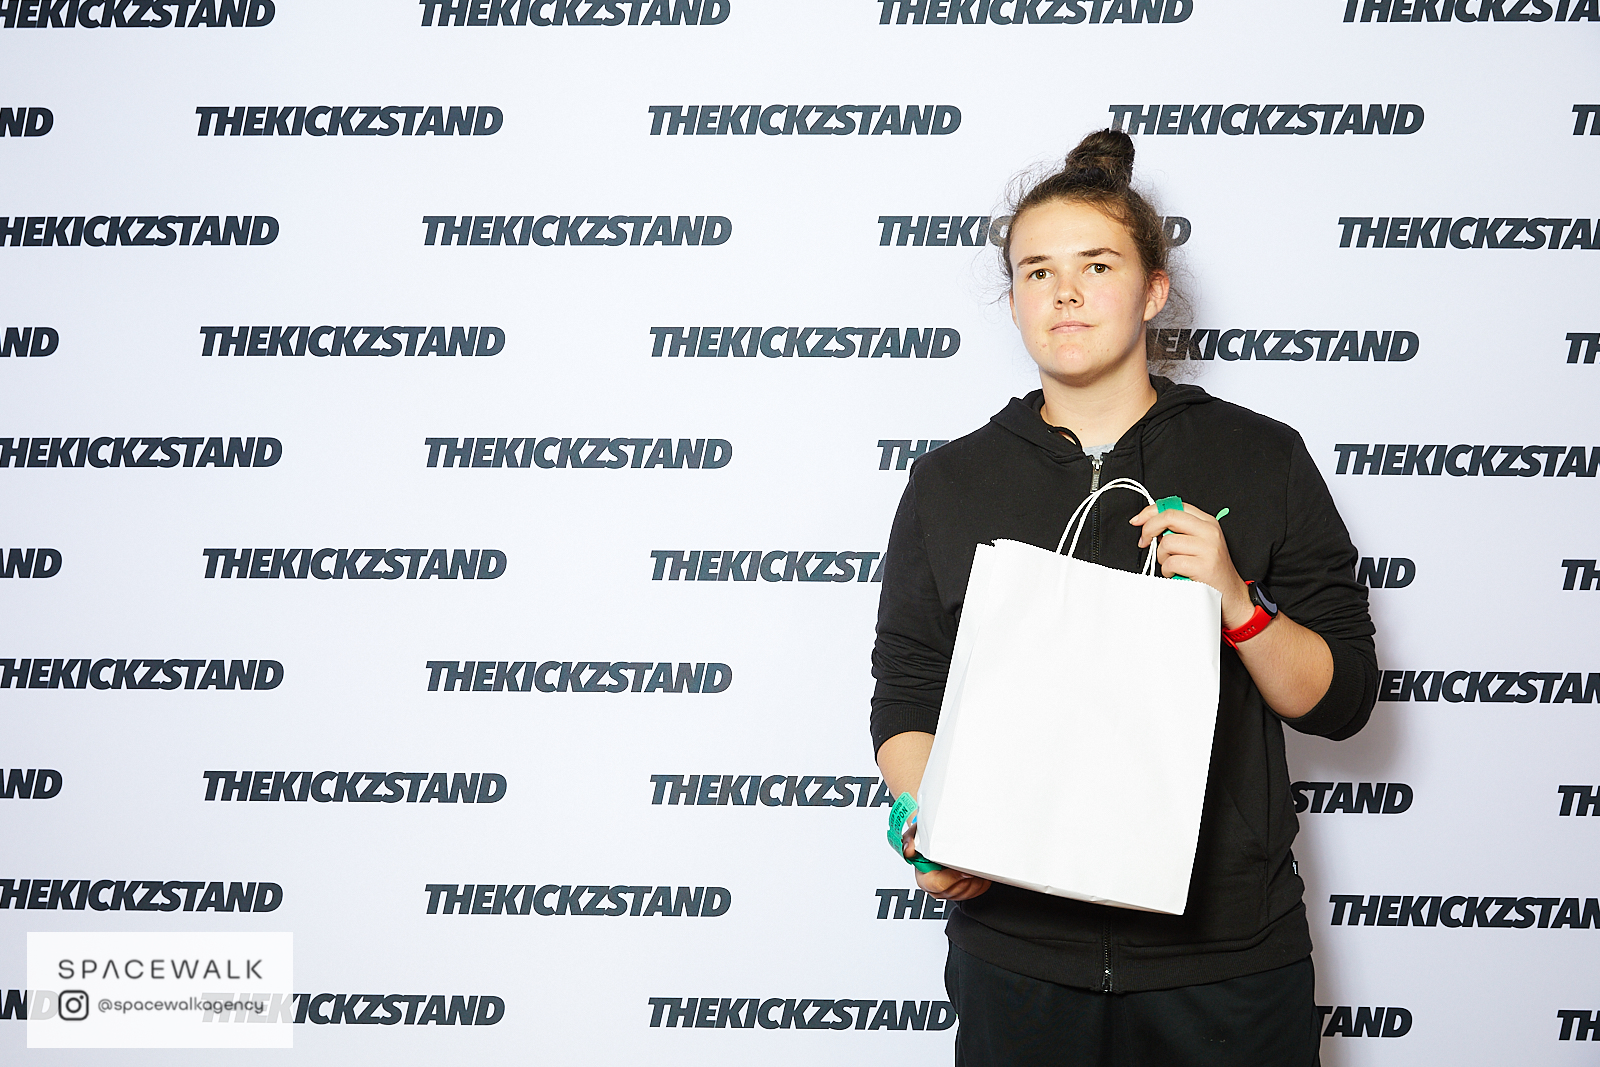 KICKZSTAND_BOOTH_070